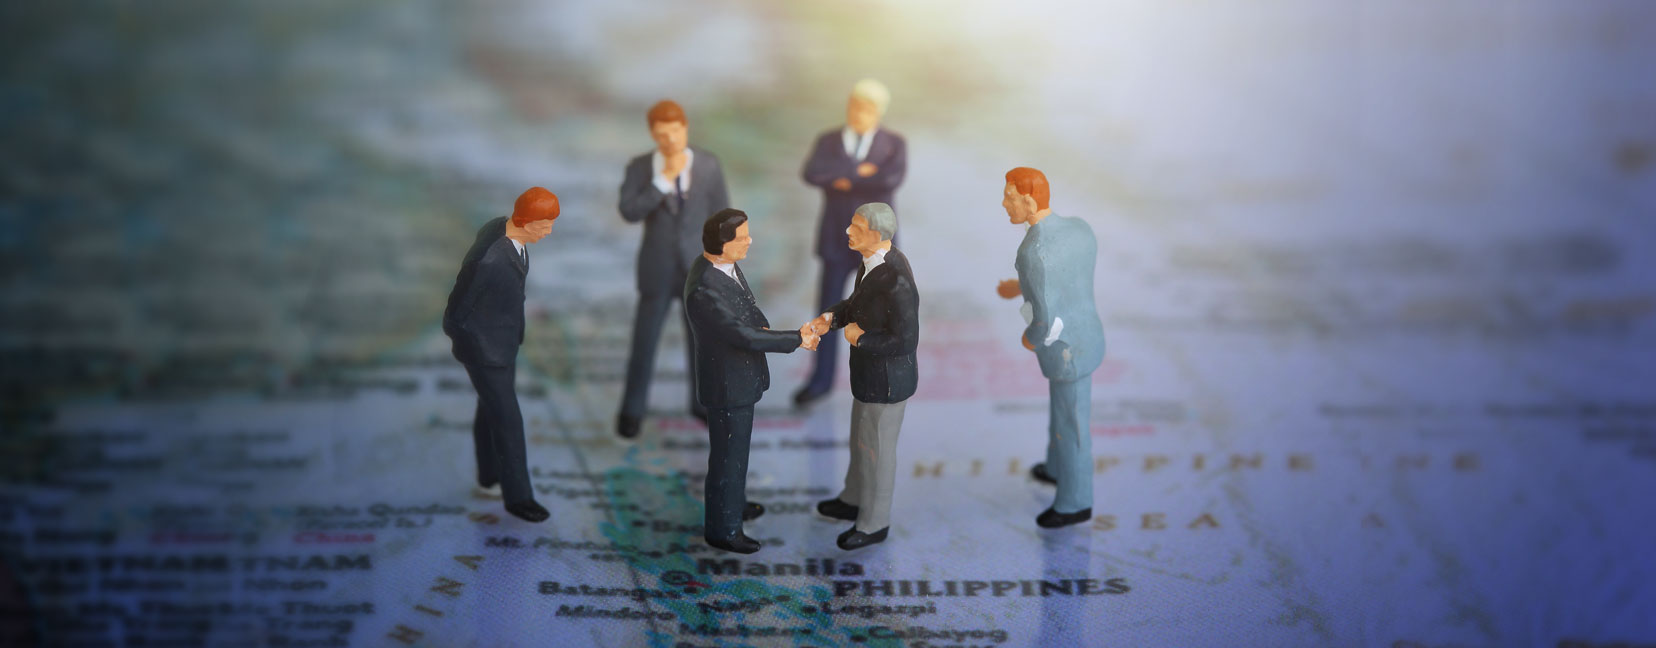 100 New foreign firms may soon set up BPO offices in PH